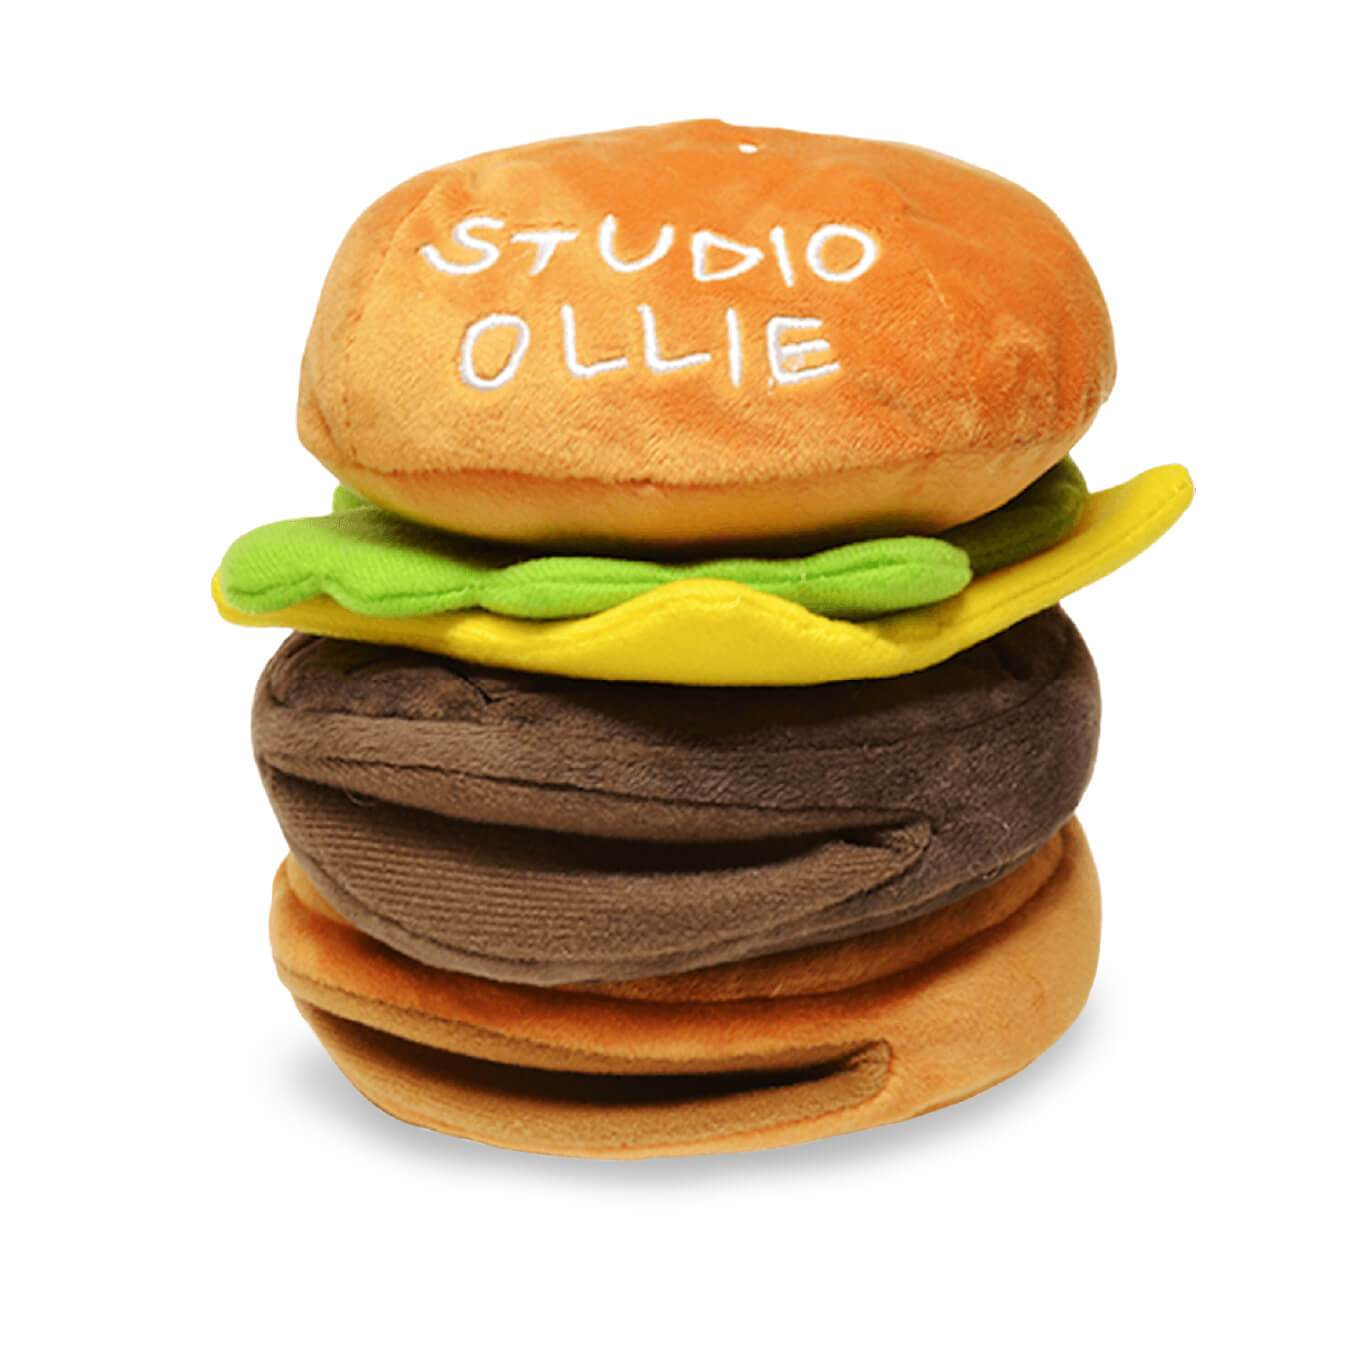 Studio Ollie - Yummy Cheeseburger